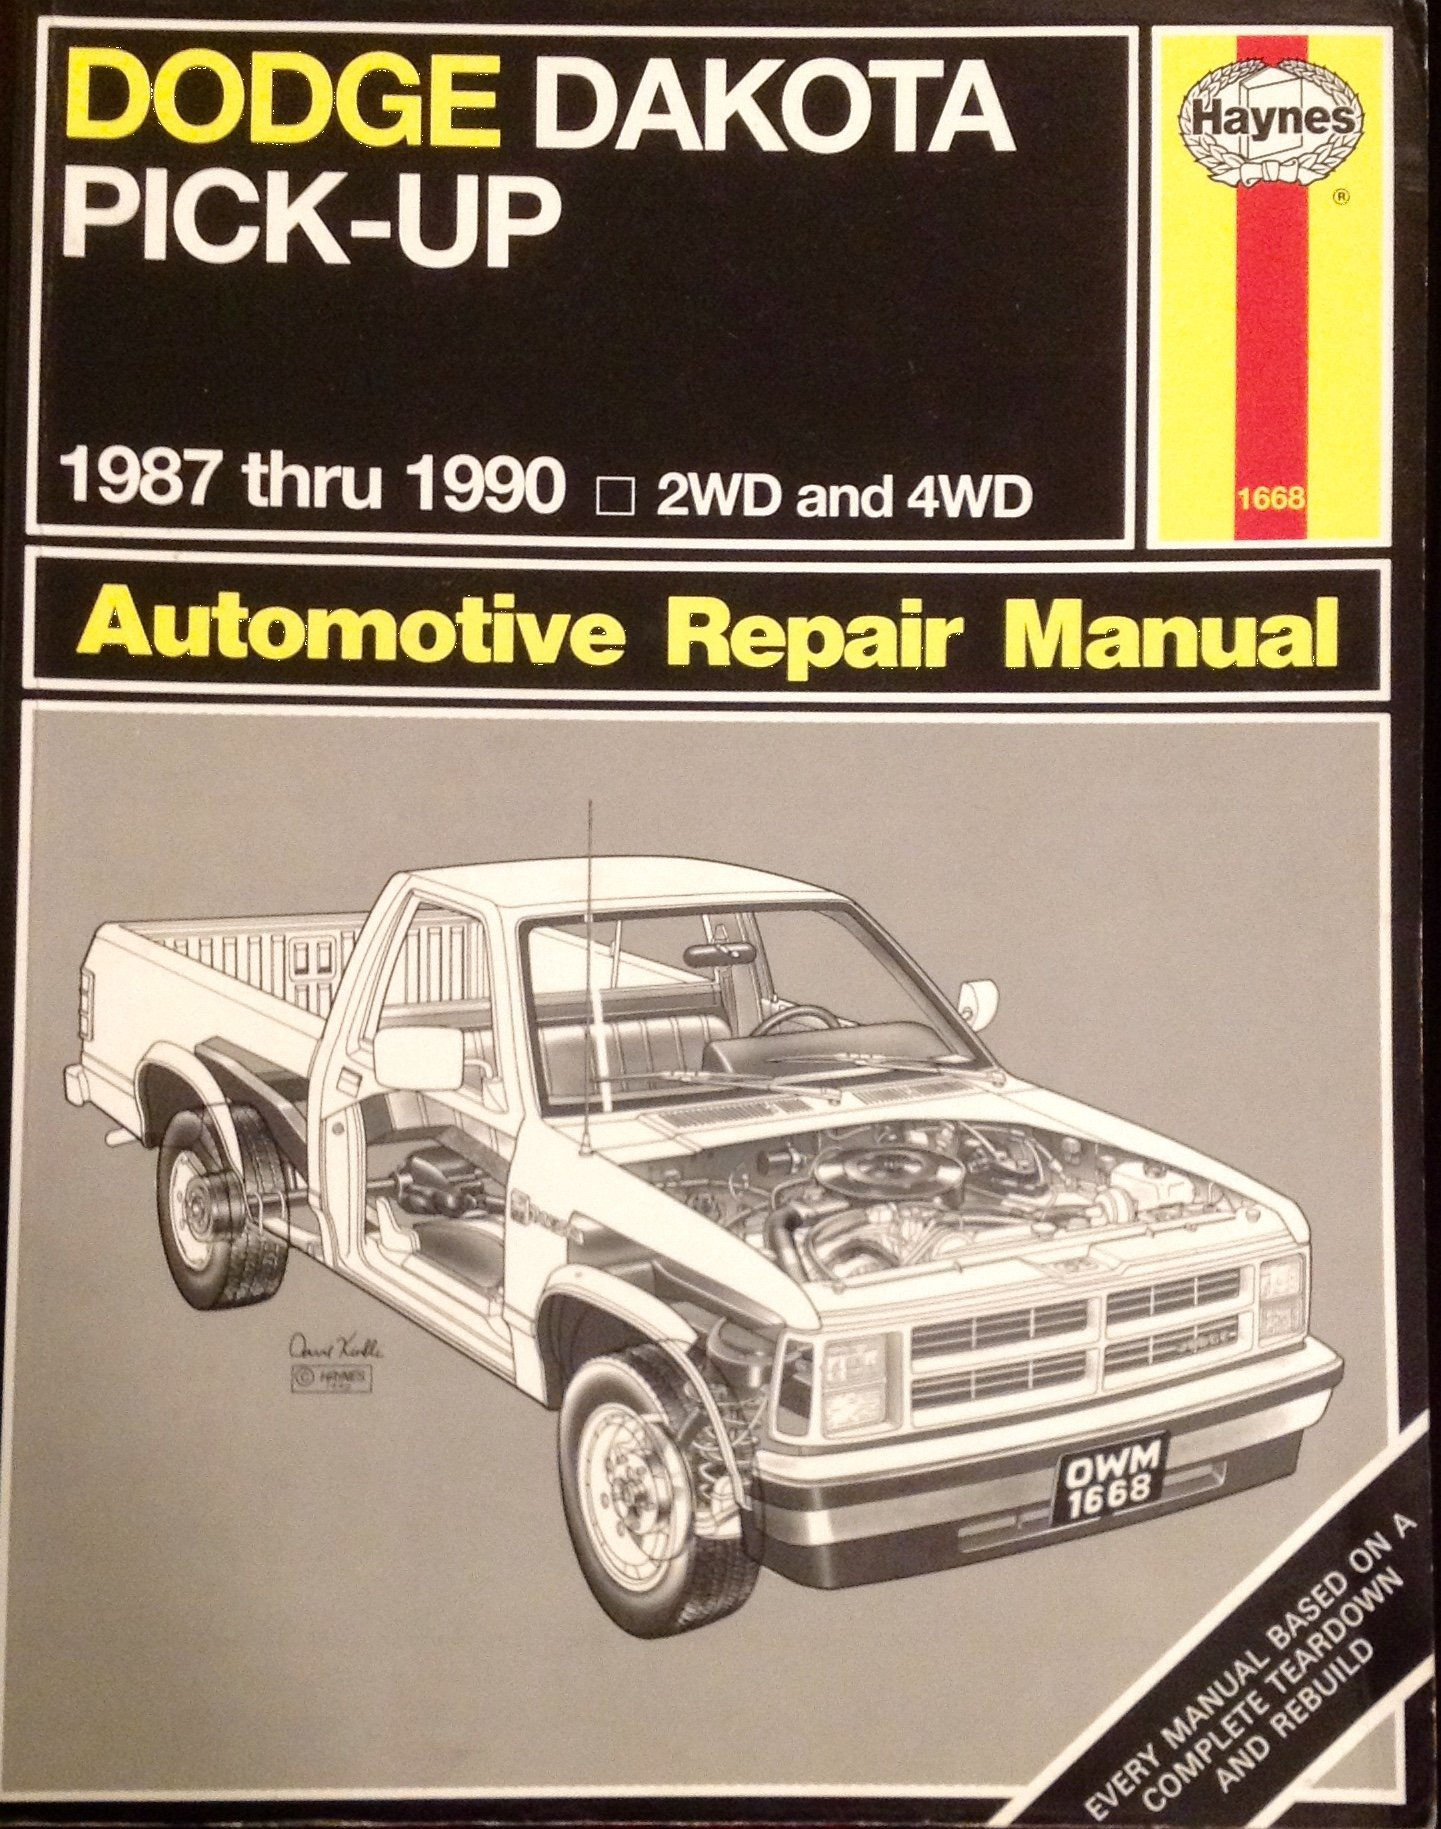 Dodge Dakota Pick-up 1987 thru 1990 2WD and 4WD Automotive Repair Manual:  Brian Styve: 9781850106685: Amazon.com: Books